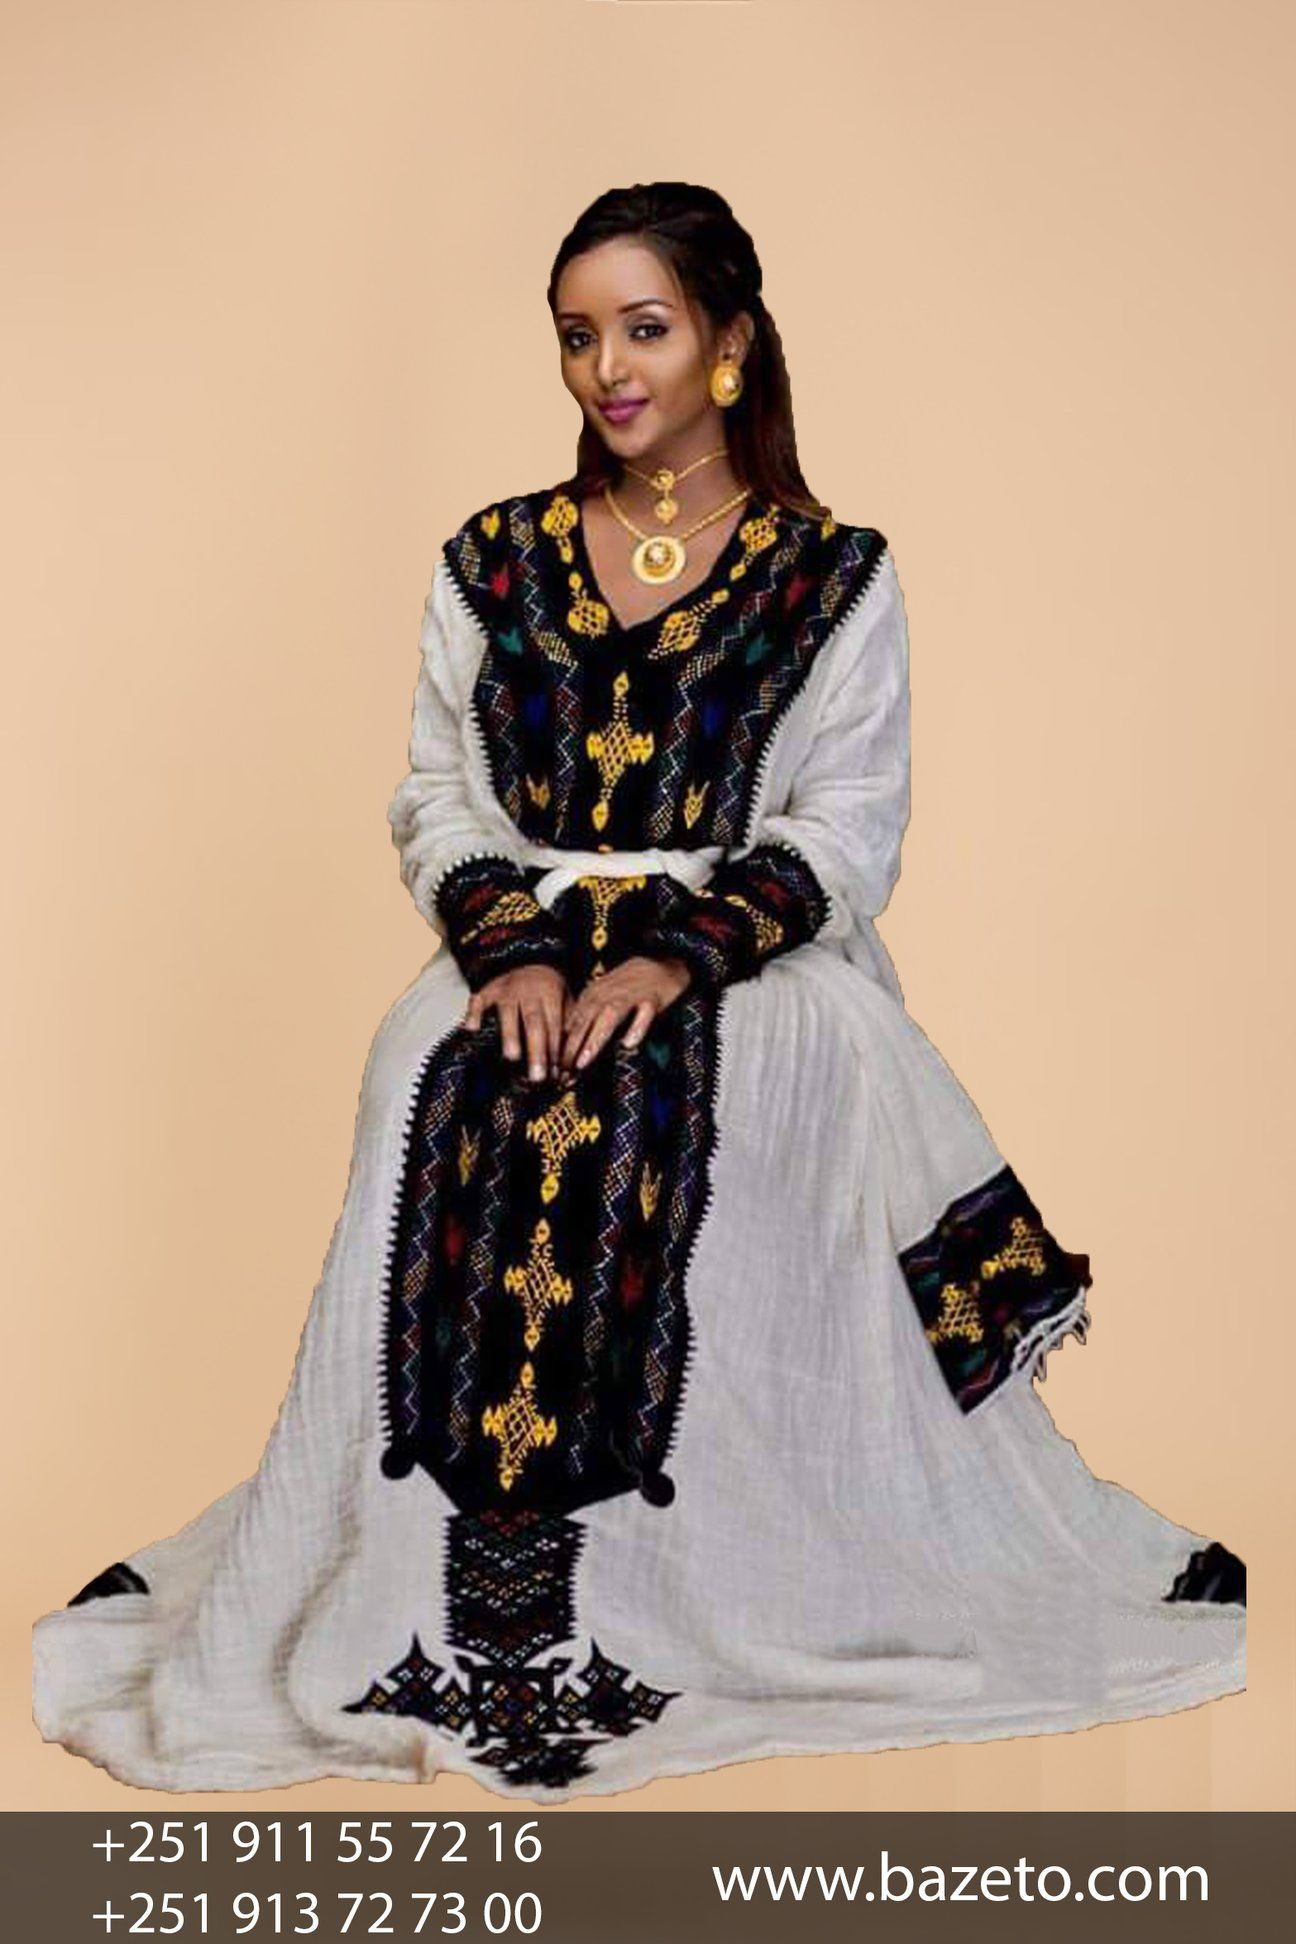 Axum Beautiful Ethiopian Traditional Cloth Bazeto Ethiopian Clothing Ethiopian Dress Traditional Outfits